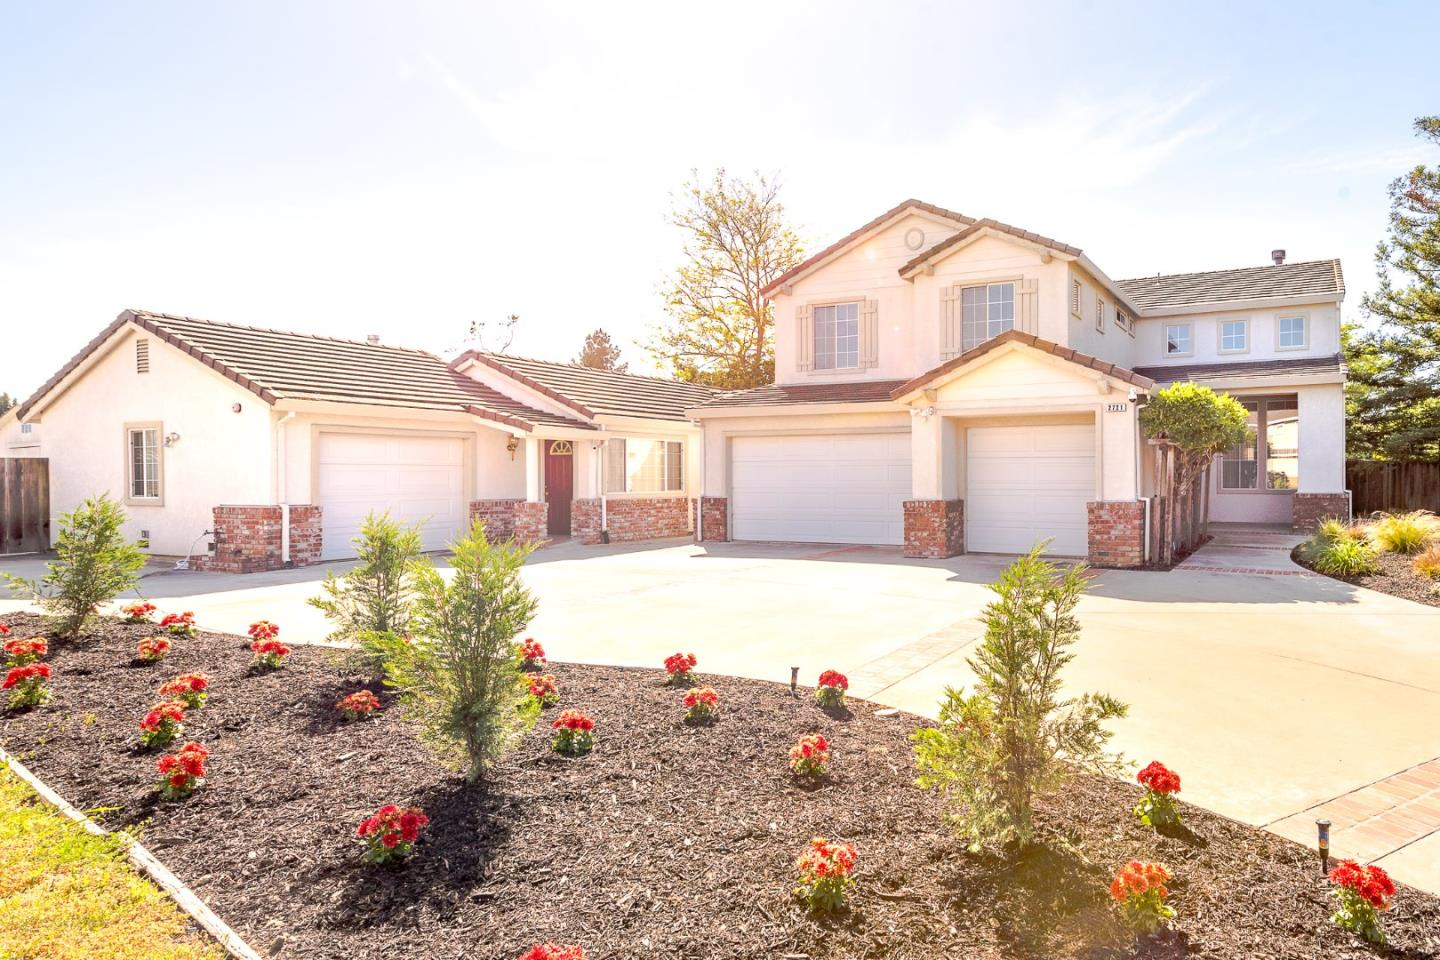 2721 Cherry Blossom Way, UNION CITY, CA 94587